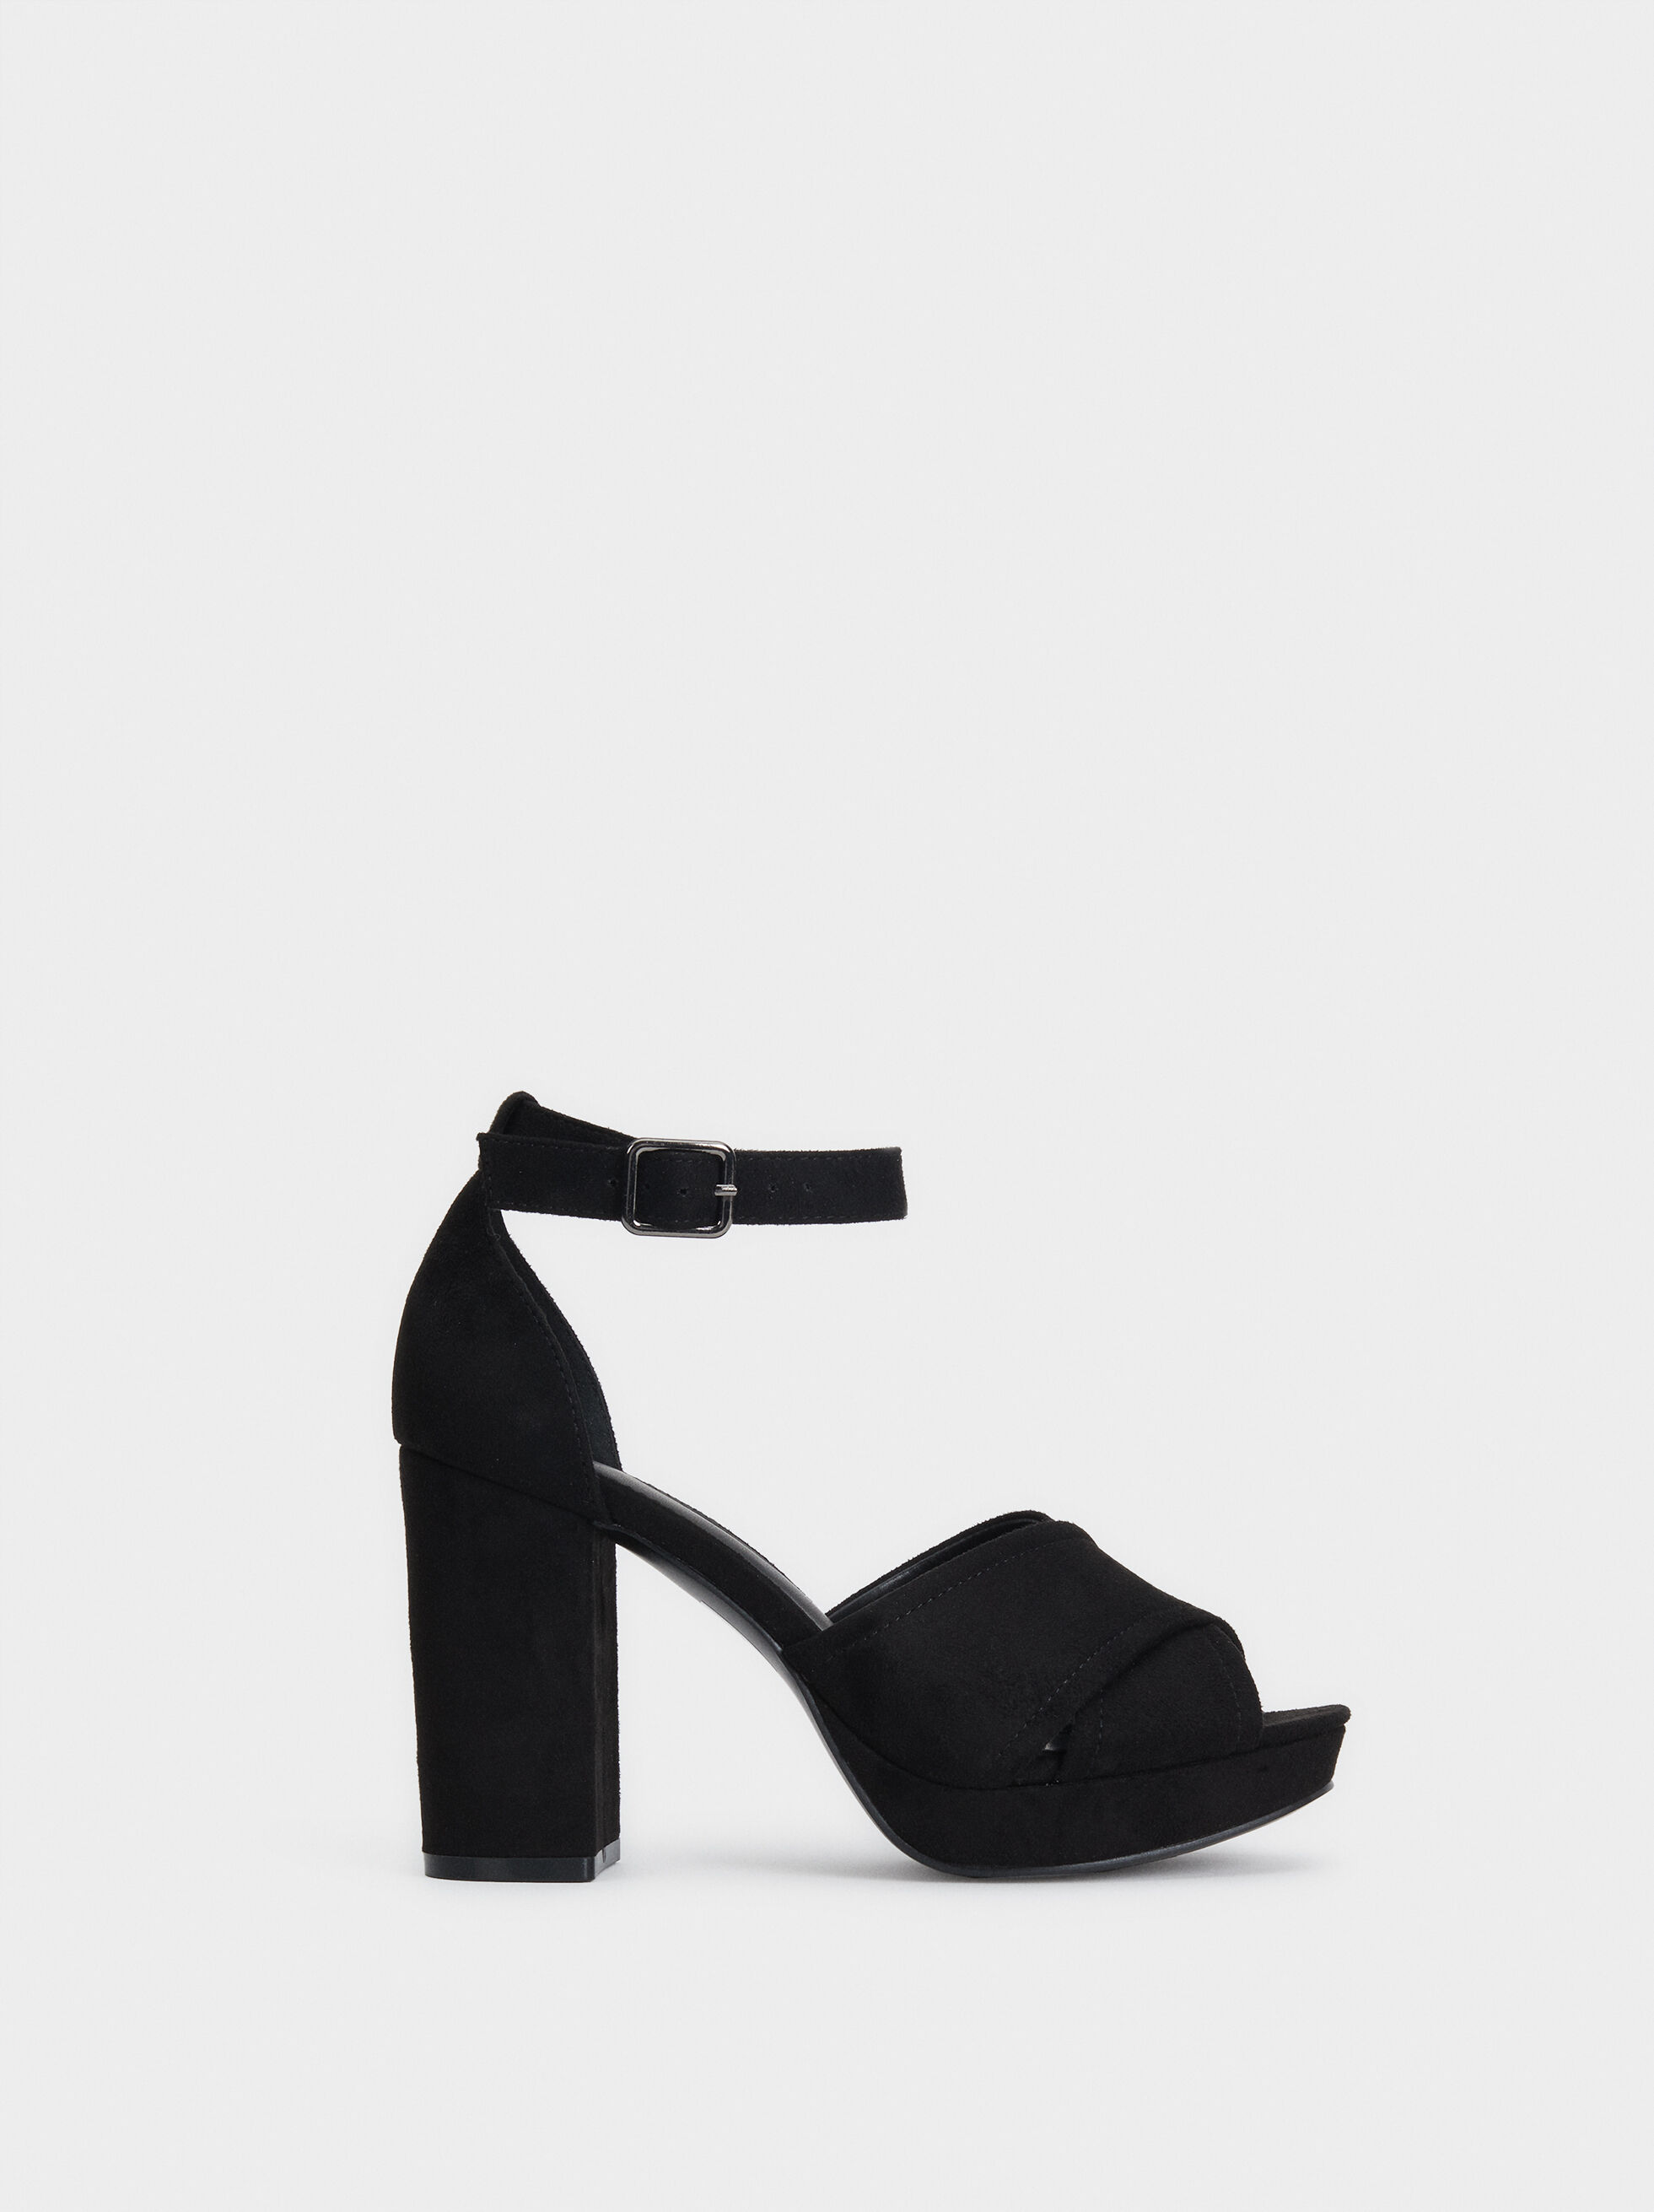 Heeled Sandals With Crossed Straps, , hi-res